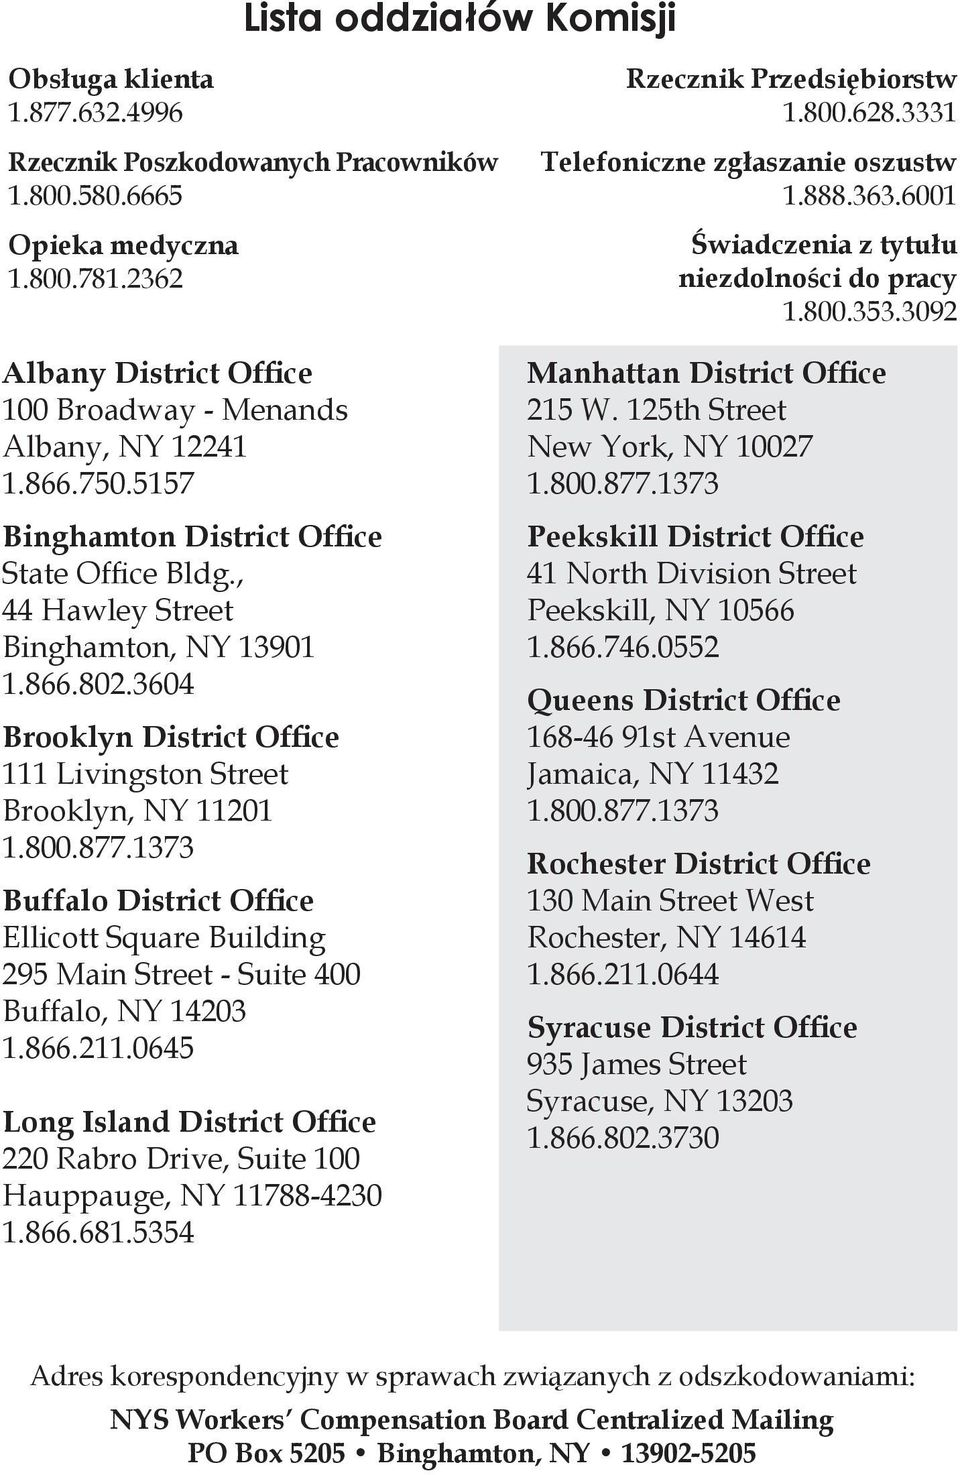 3604 Brooklyn District Office 111 Livingston Street Brooklyn, NY 11201 1.800.877.1373 Buffalo District Office Ellicott Square Building 295 Main Street - Suite 400 Buffalo, NY 14203 1.866.211.